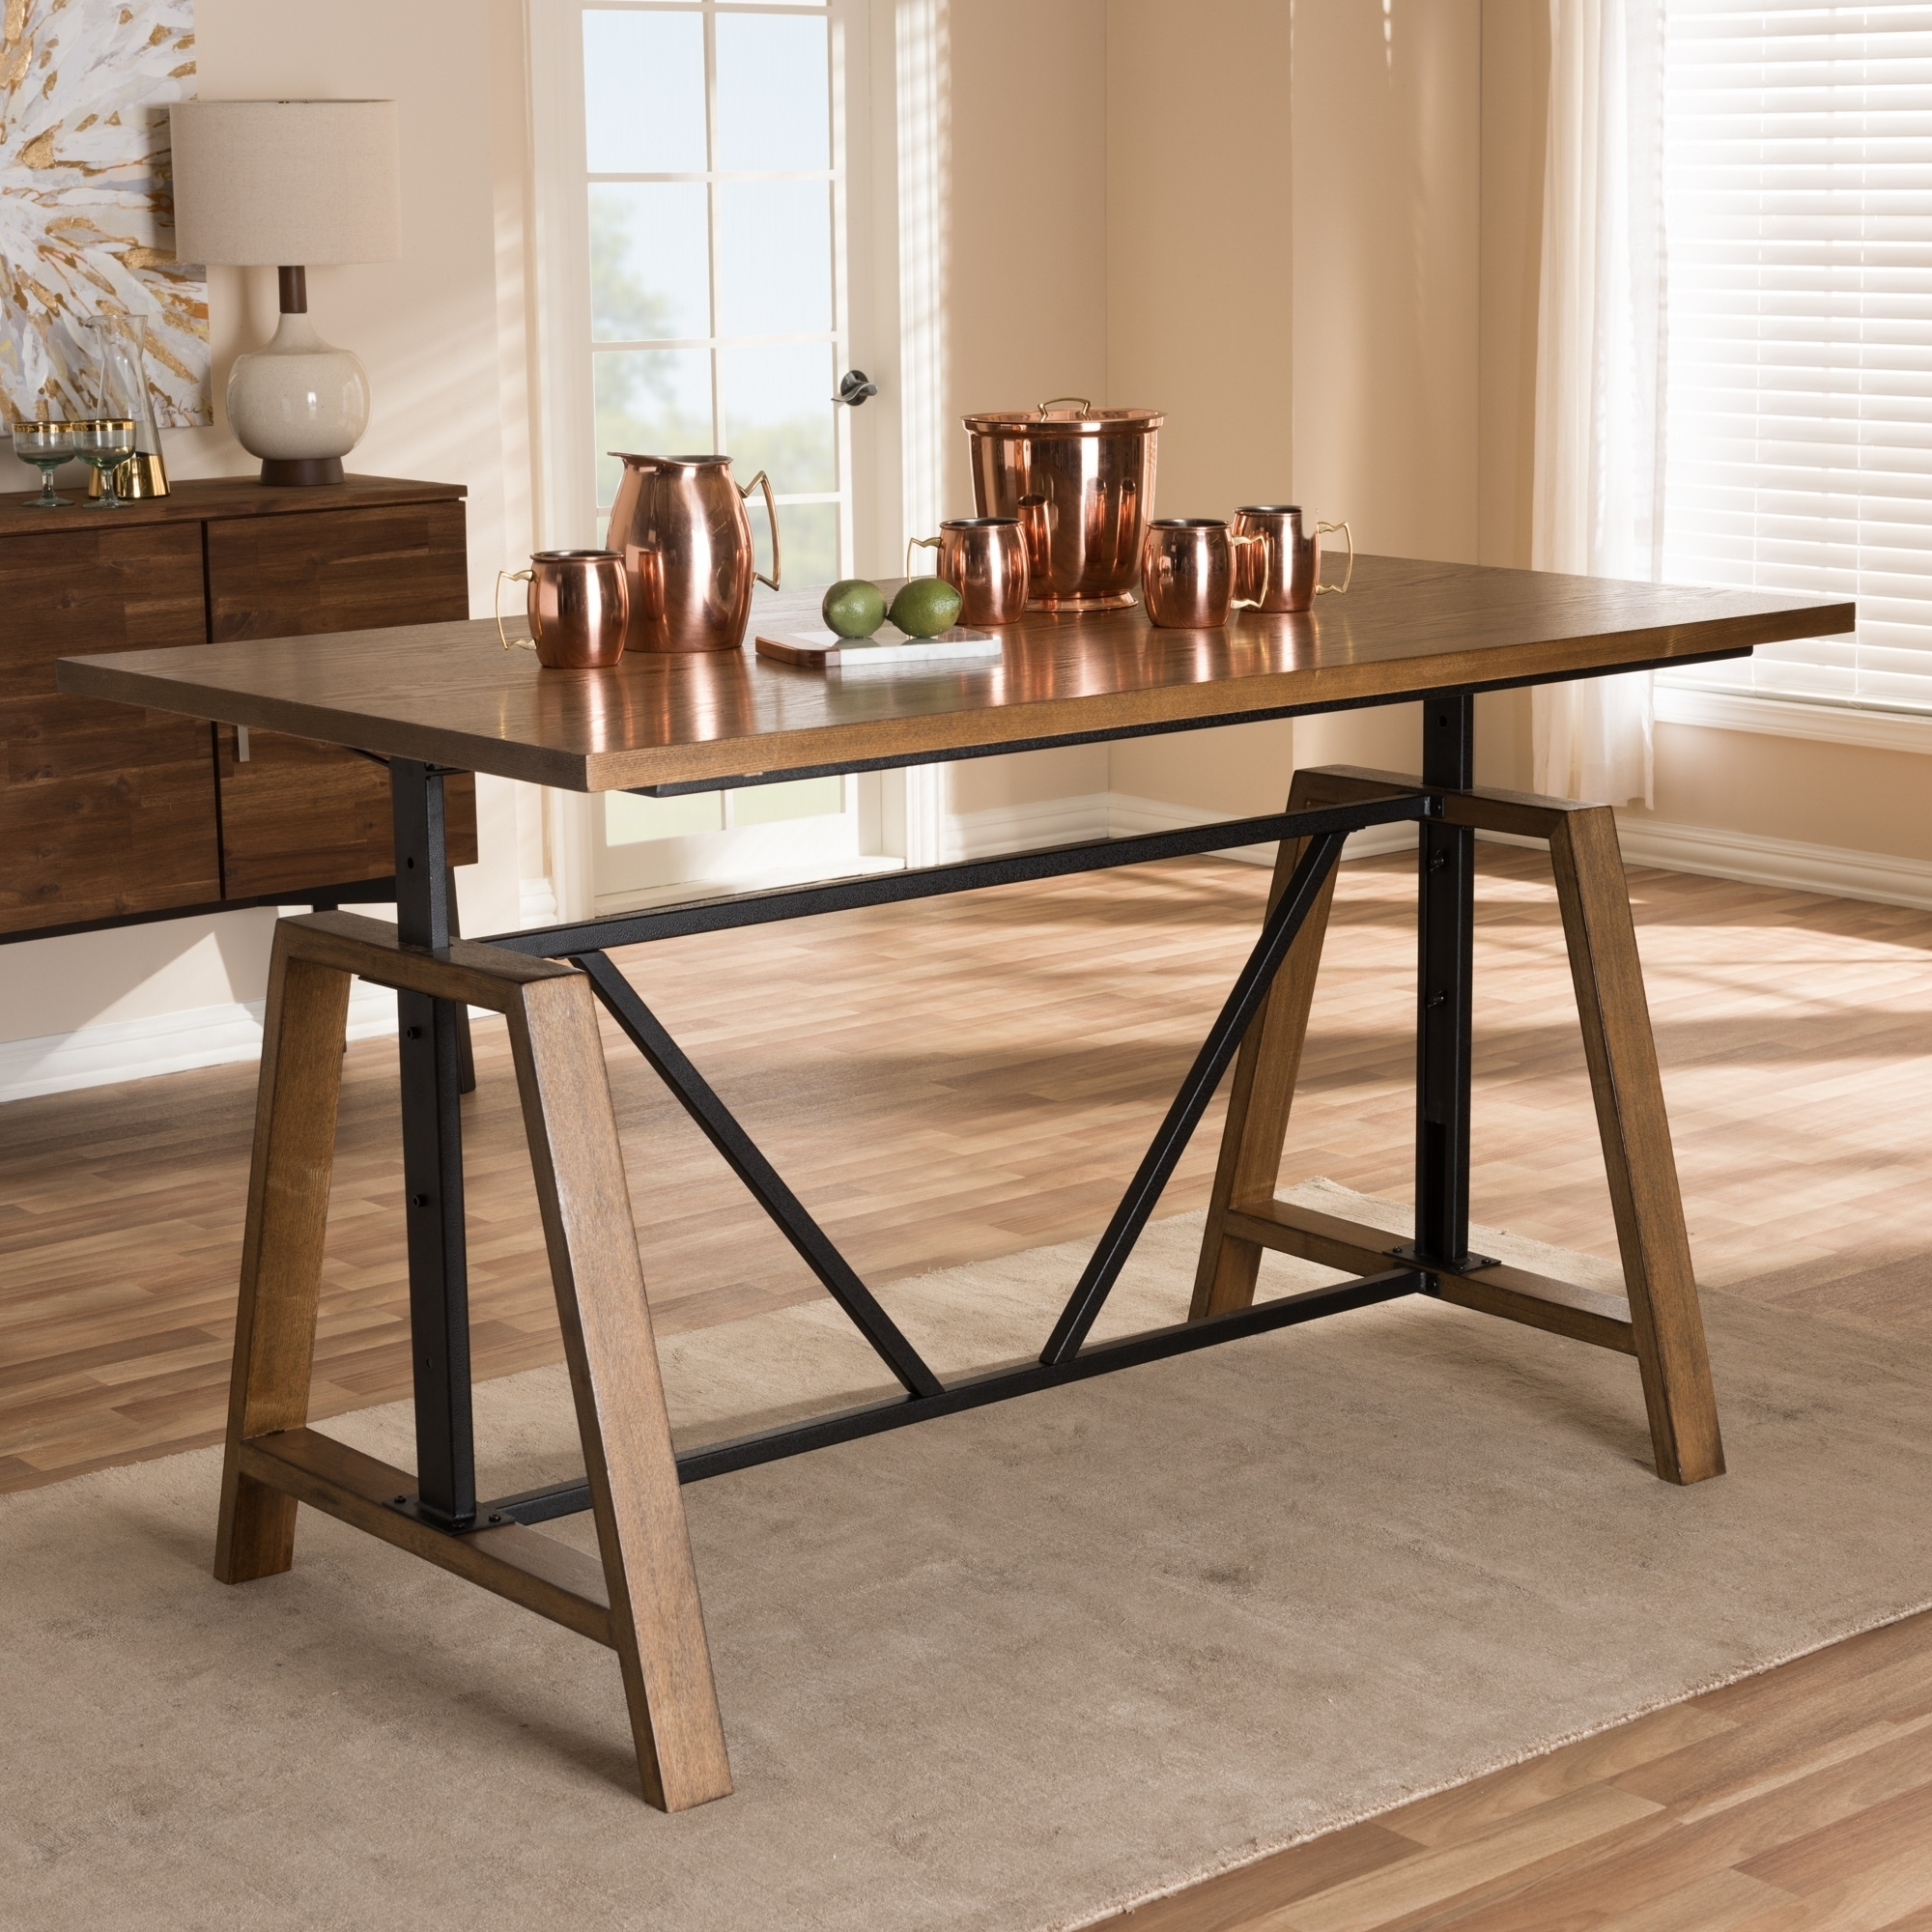 Rustic Metal And Wood Adjule Desk By Baxton Studio Free Shipping Today 17974378